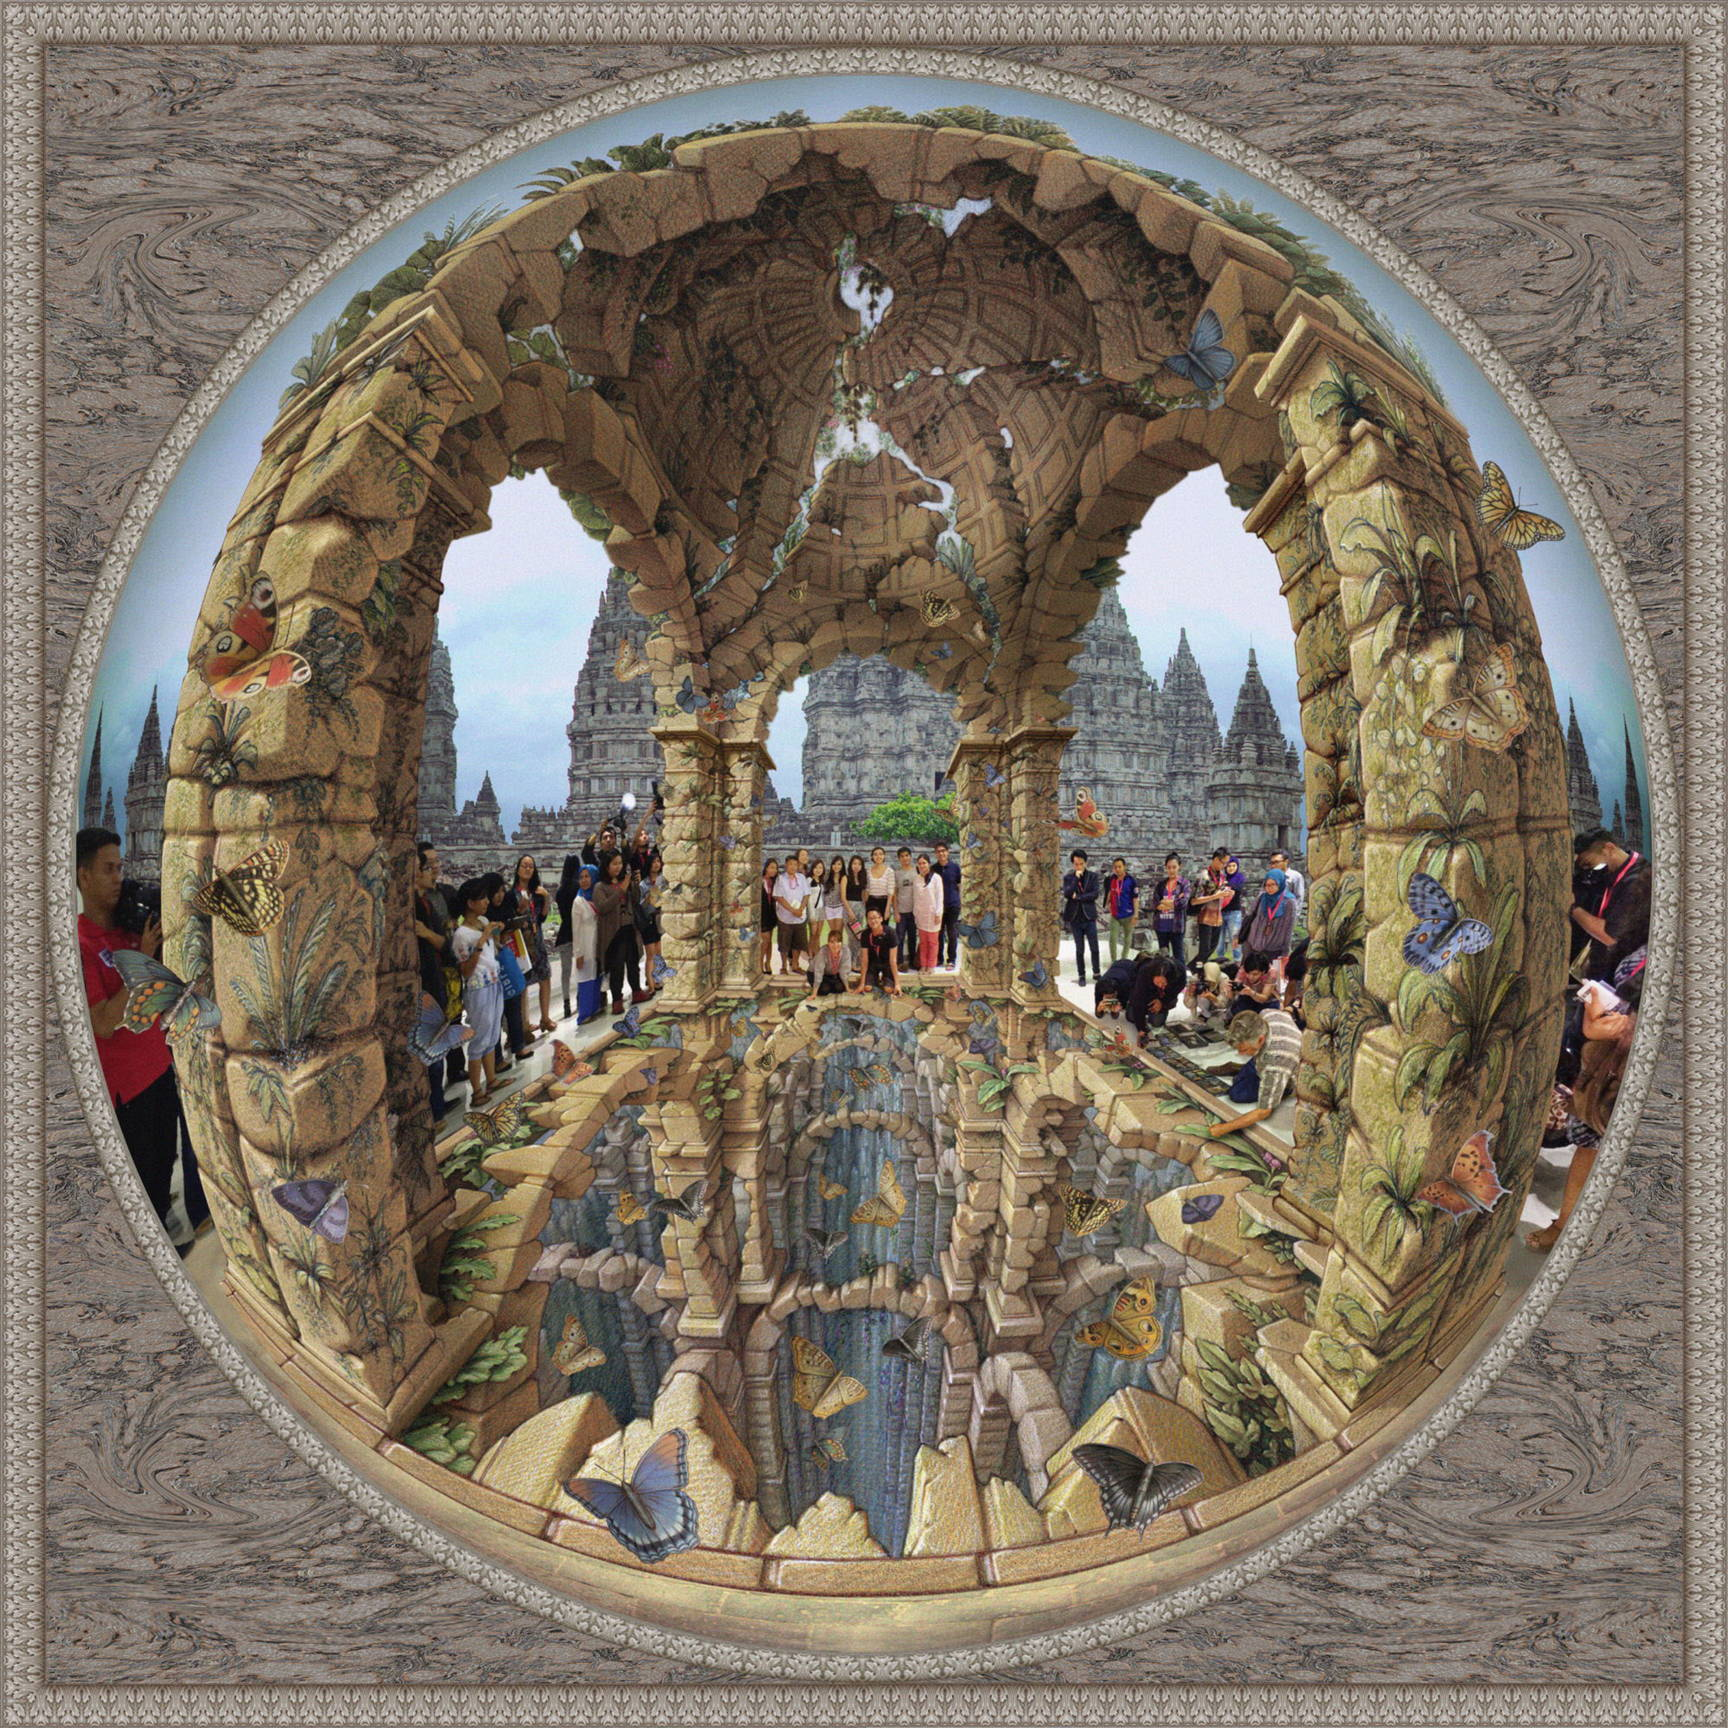 3D Museum of Wonders by Kurt Wenner